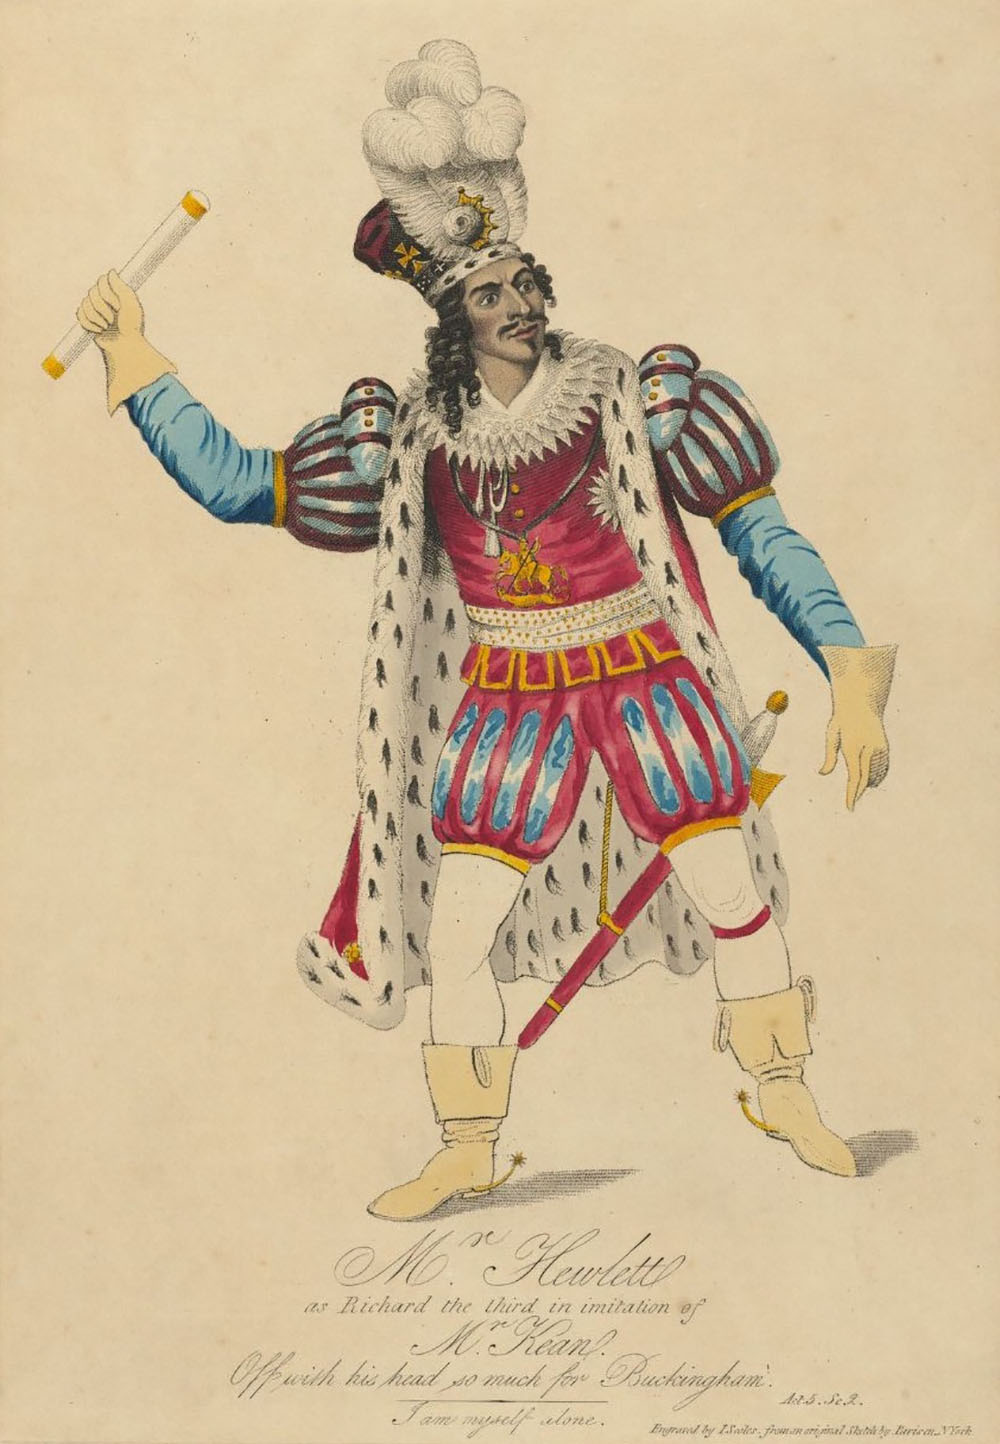 A drawing of an actor wearing regal dress for Richard III